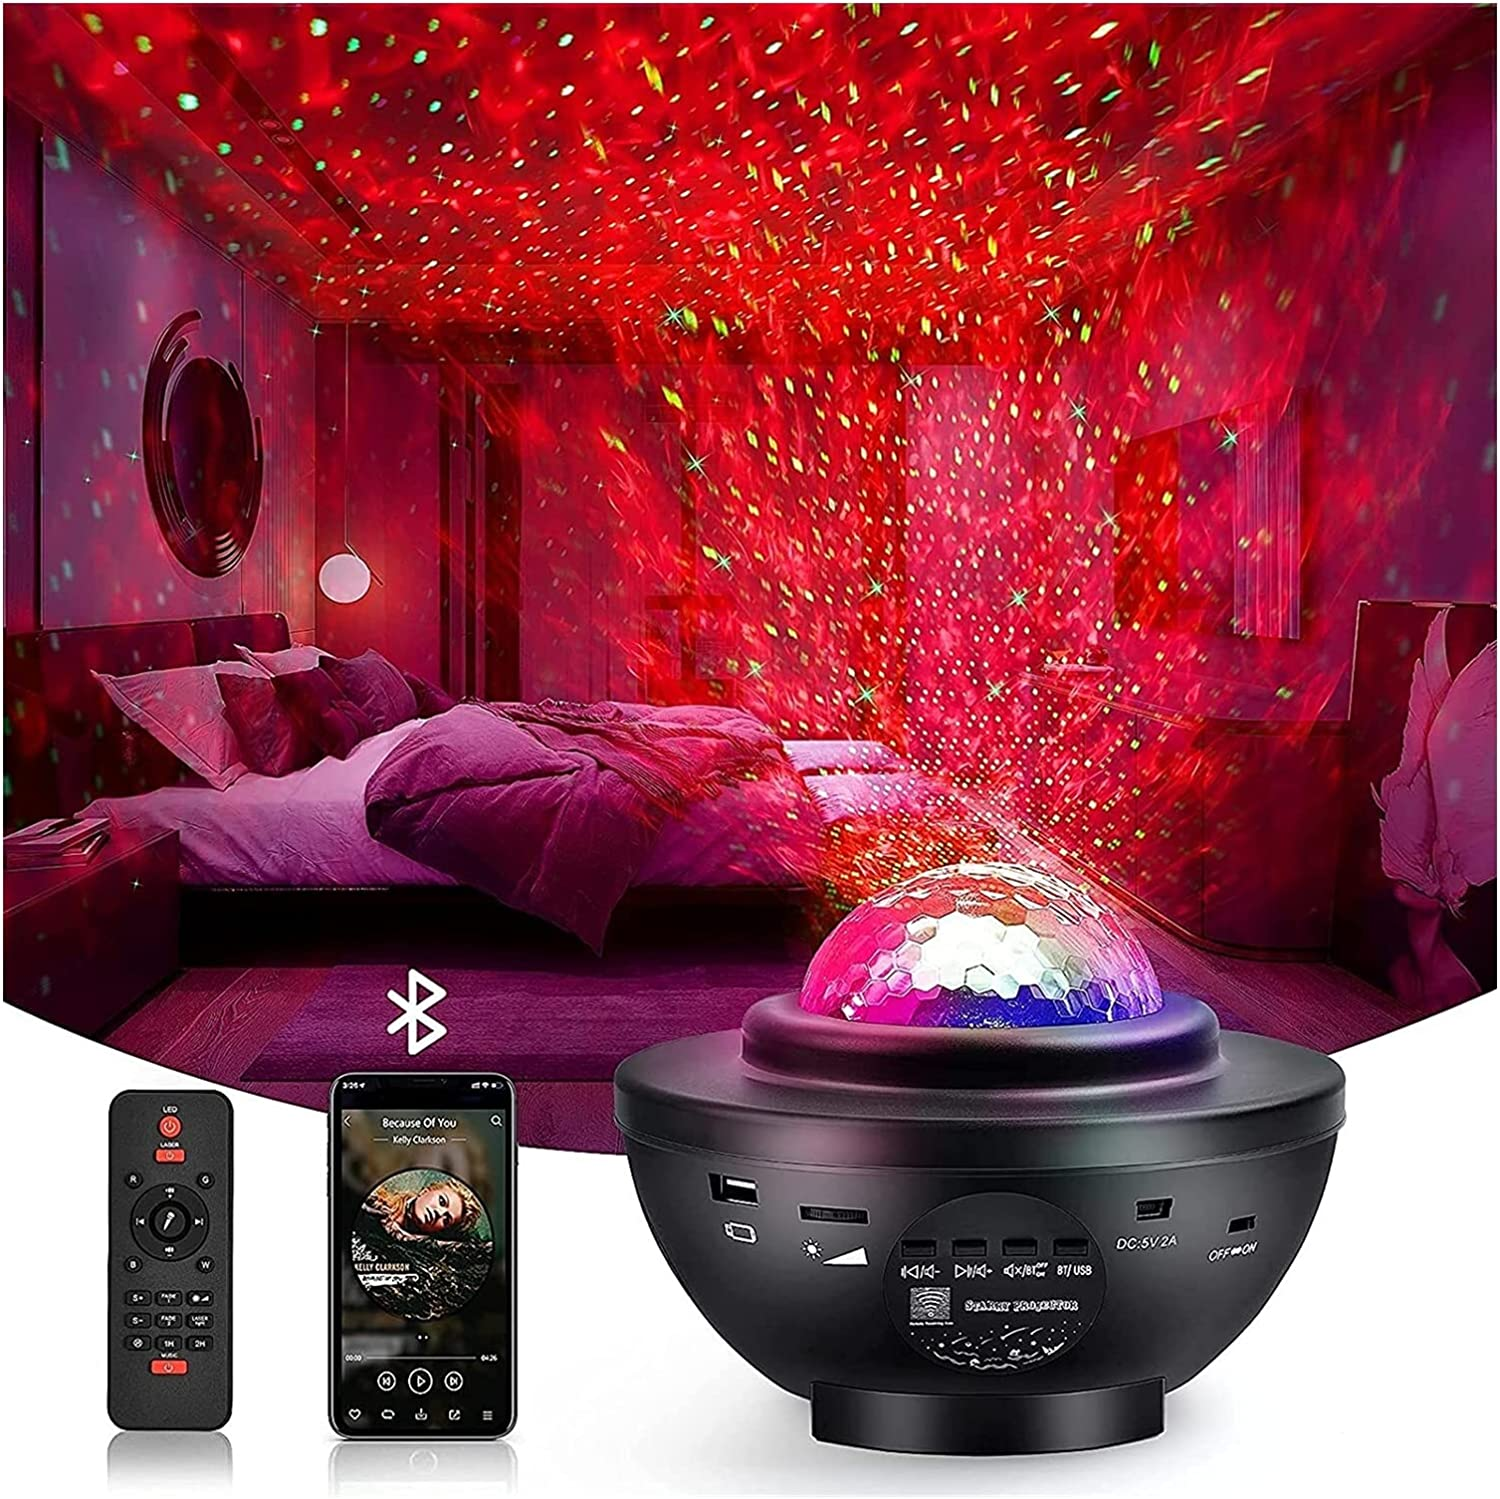 Lovedfgh Outlet SALE Star Projector Nig Super beauty product restock quality top Galaxy LED